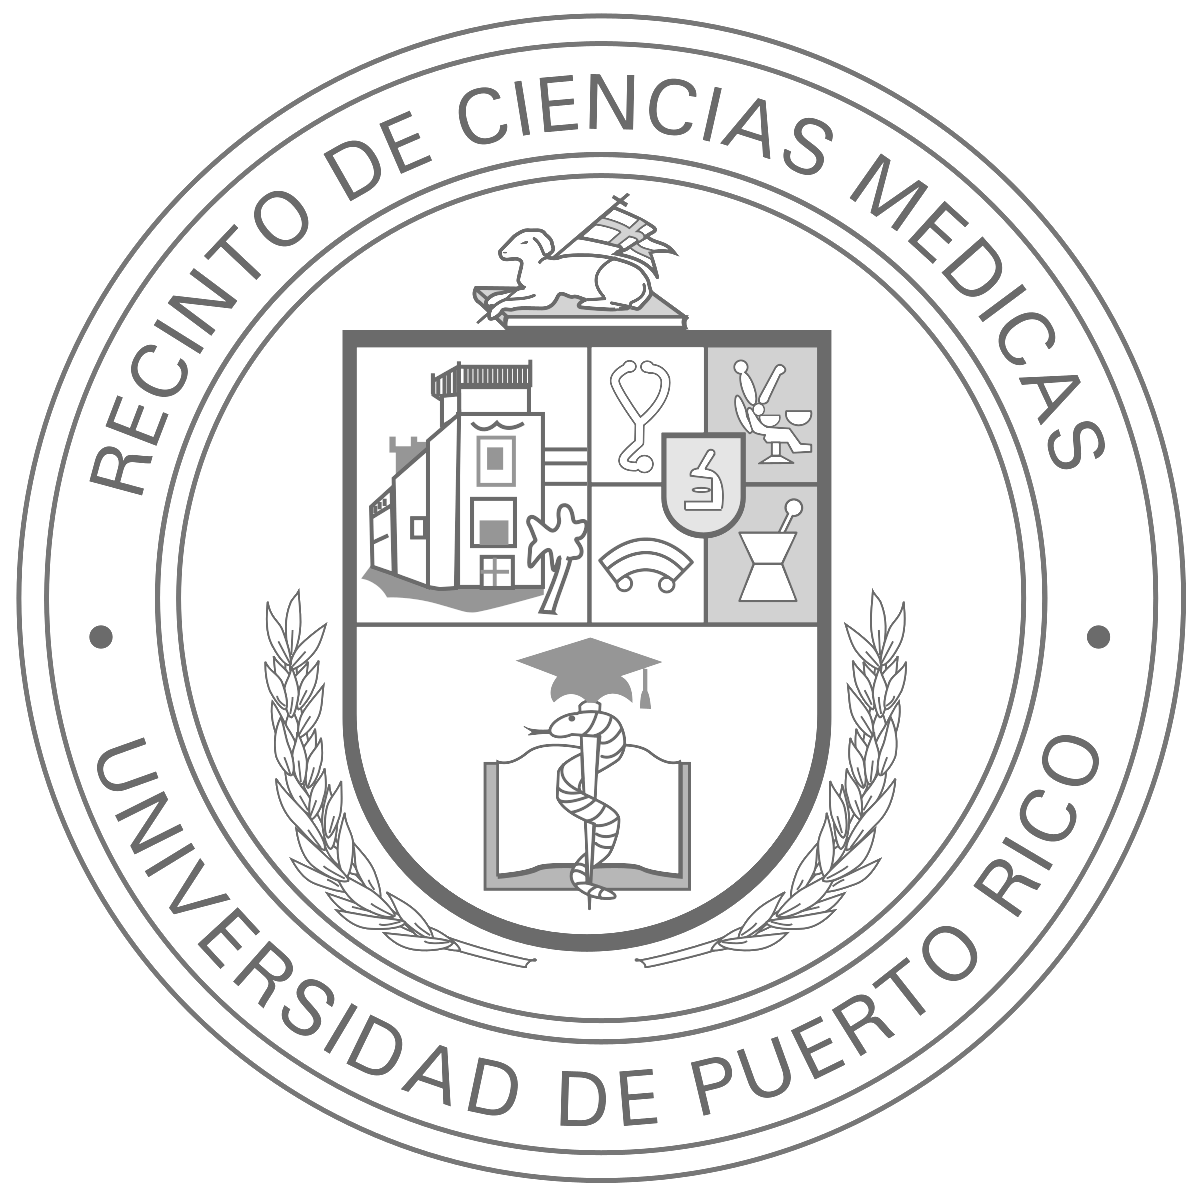 1200px-Seal_of_Recinto_de_Ciencas_Medica